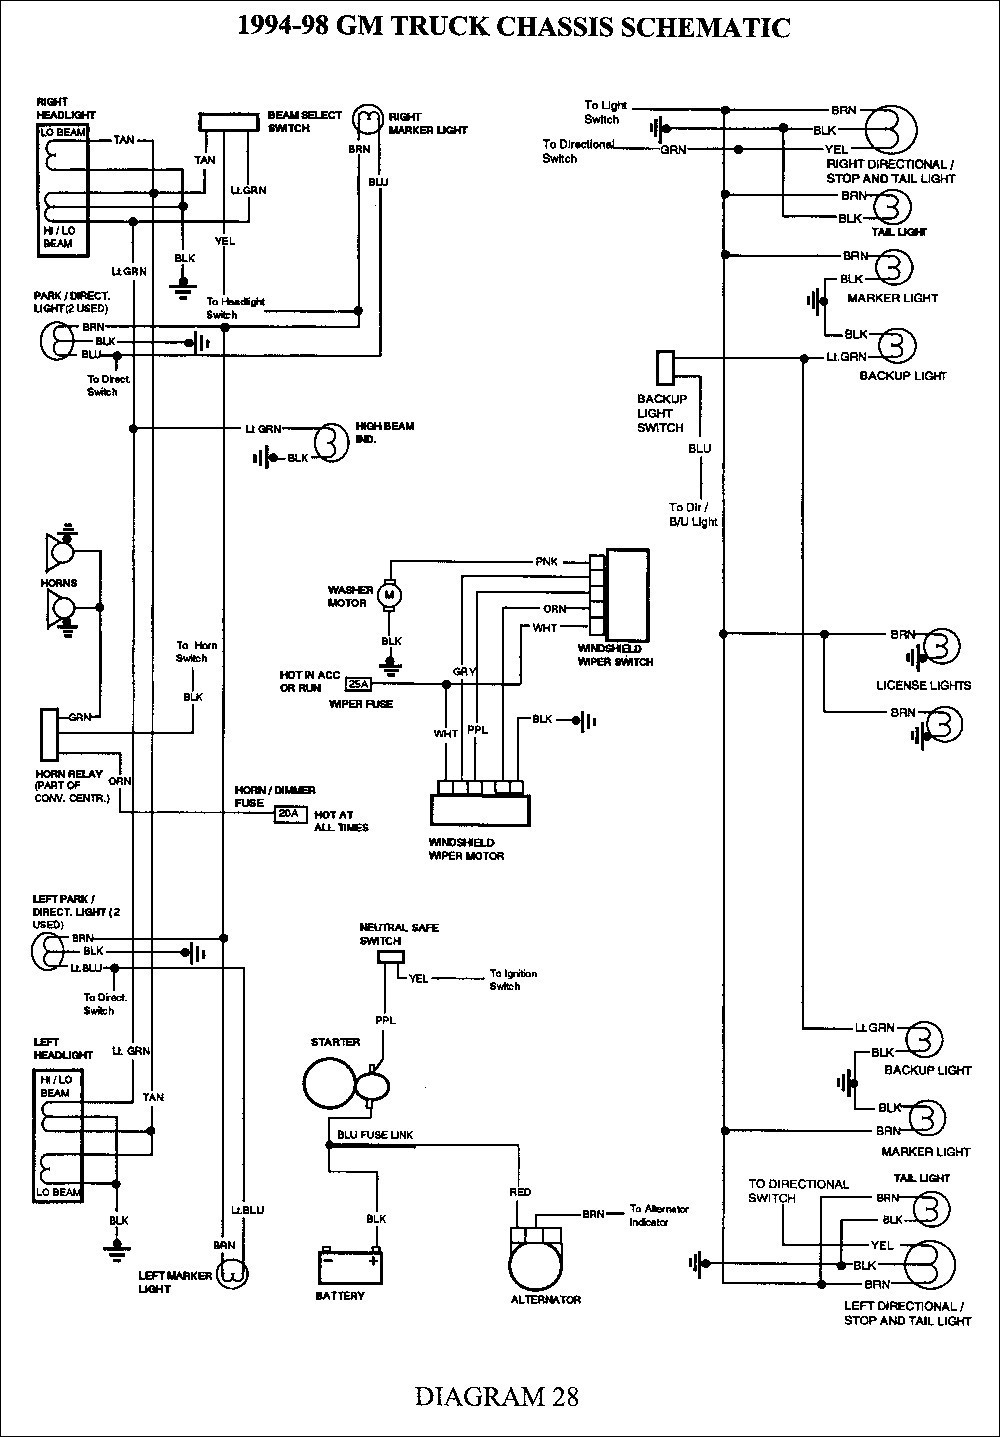 Radio Wiring Diagram Dodge Ram on trailer harness, 1500 fuel pump, power window, 1500 tail light, brake light switch, 1500 ignition switch, headlight switch,